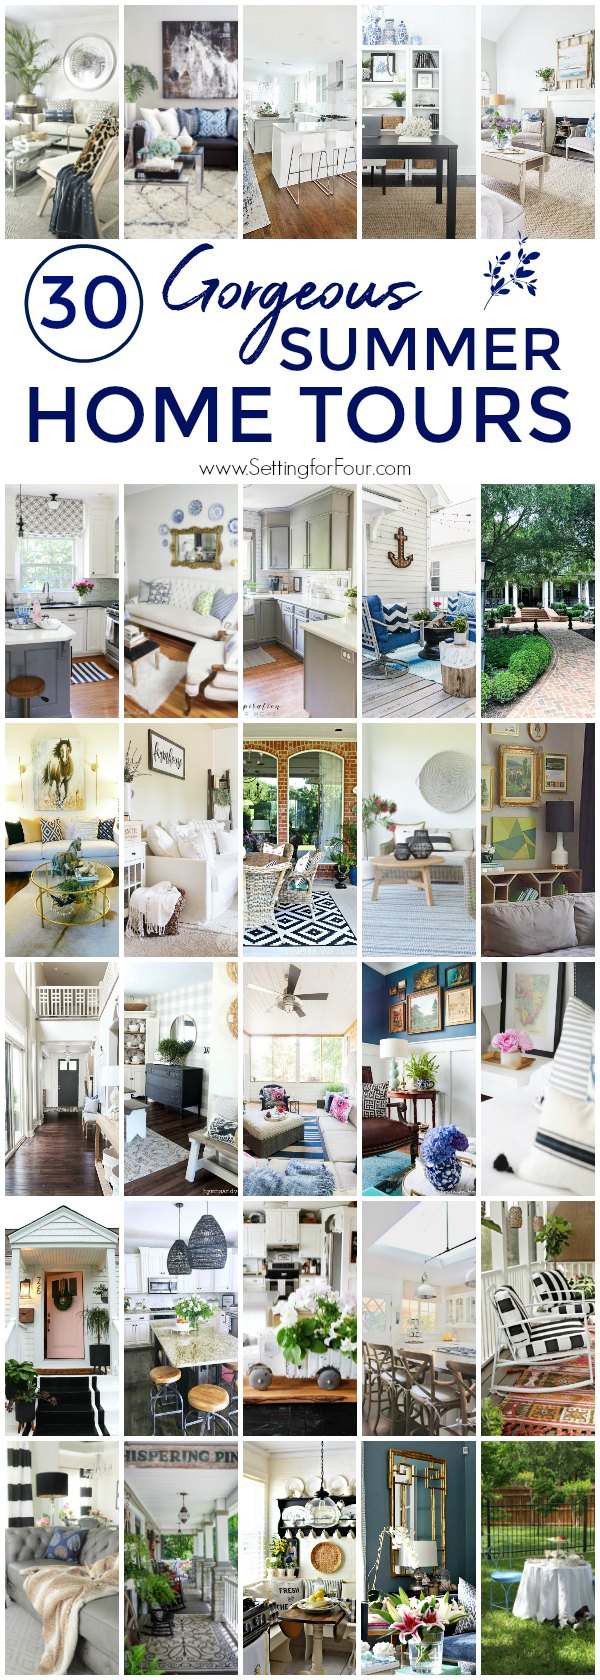 See 30 Gorgeous Summer Home Tours & Summer Decor Ideas! You'll find lots of fun summer decorating inspiration for your home, indoors and outdoors. Go through all the tours and make a list of what you'd like to add to your home to-decorate wish list! #summer #decor #decorideas #hometour #interiordesign #homedecor